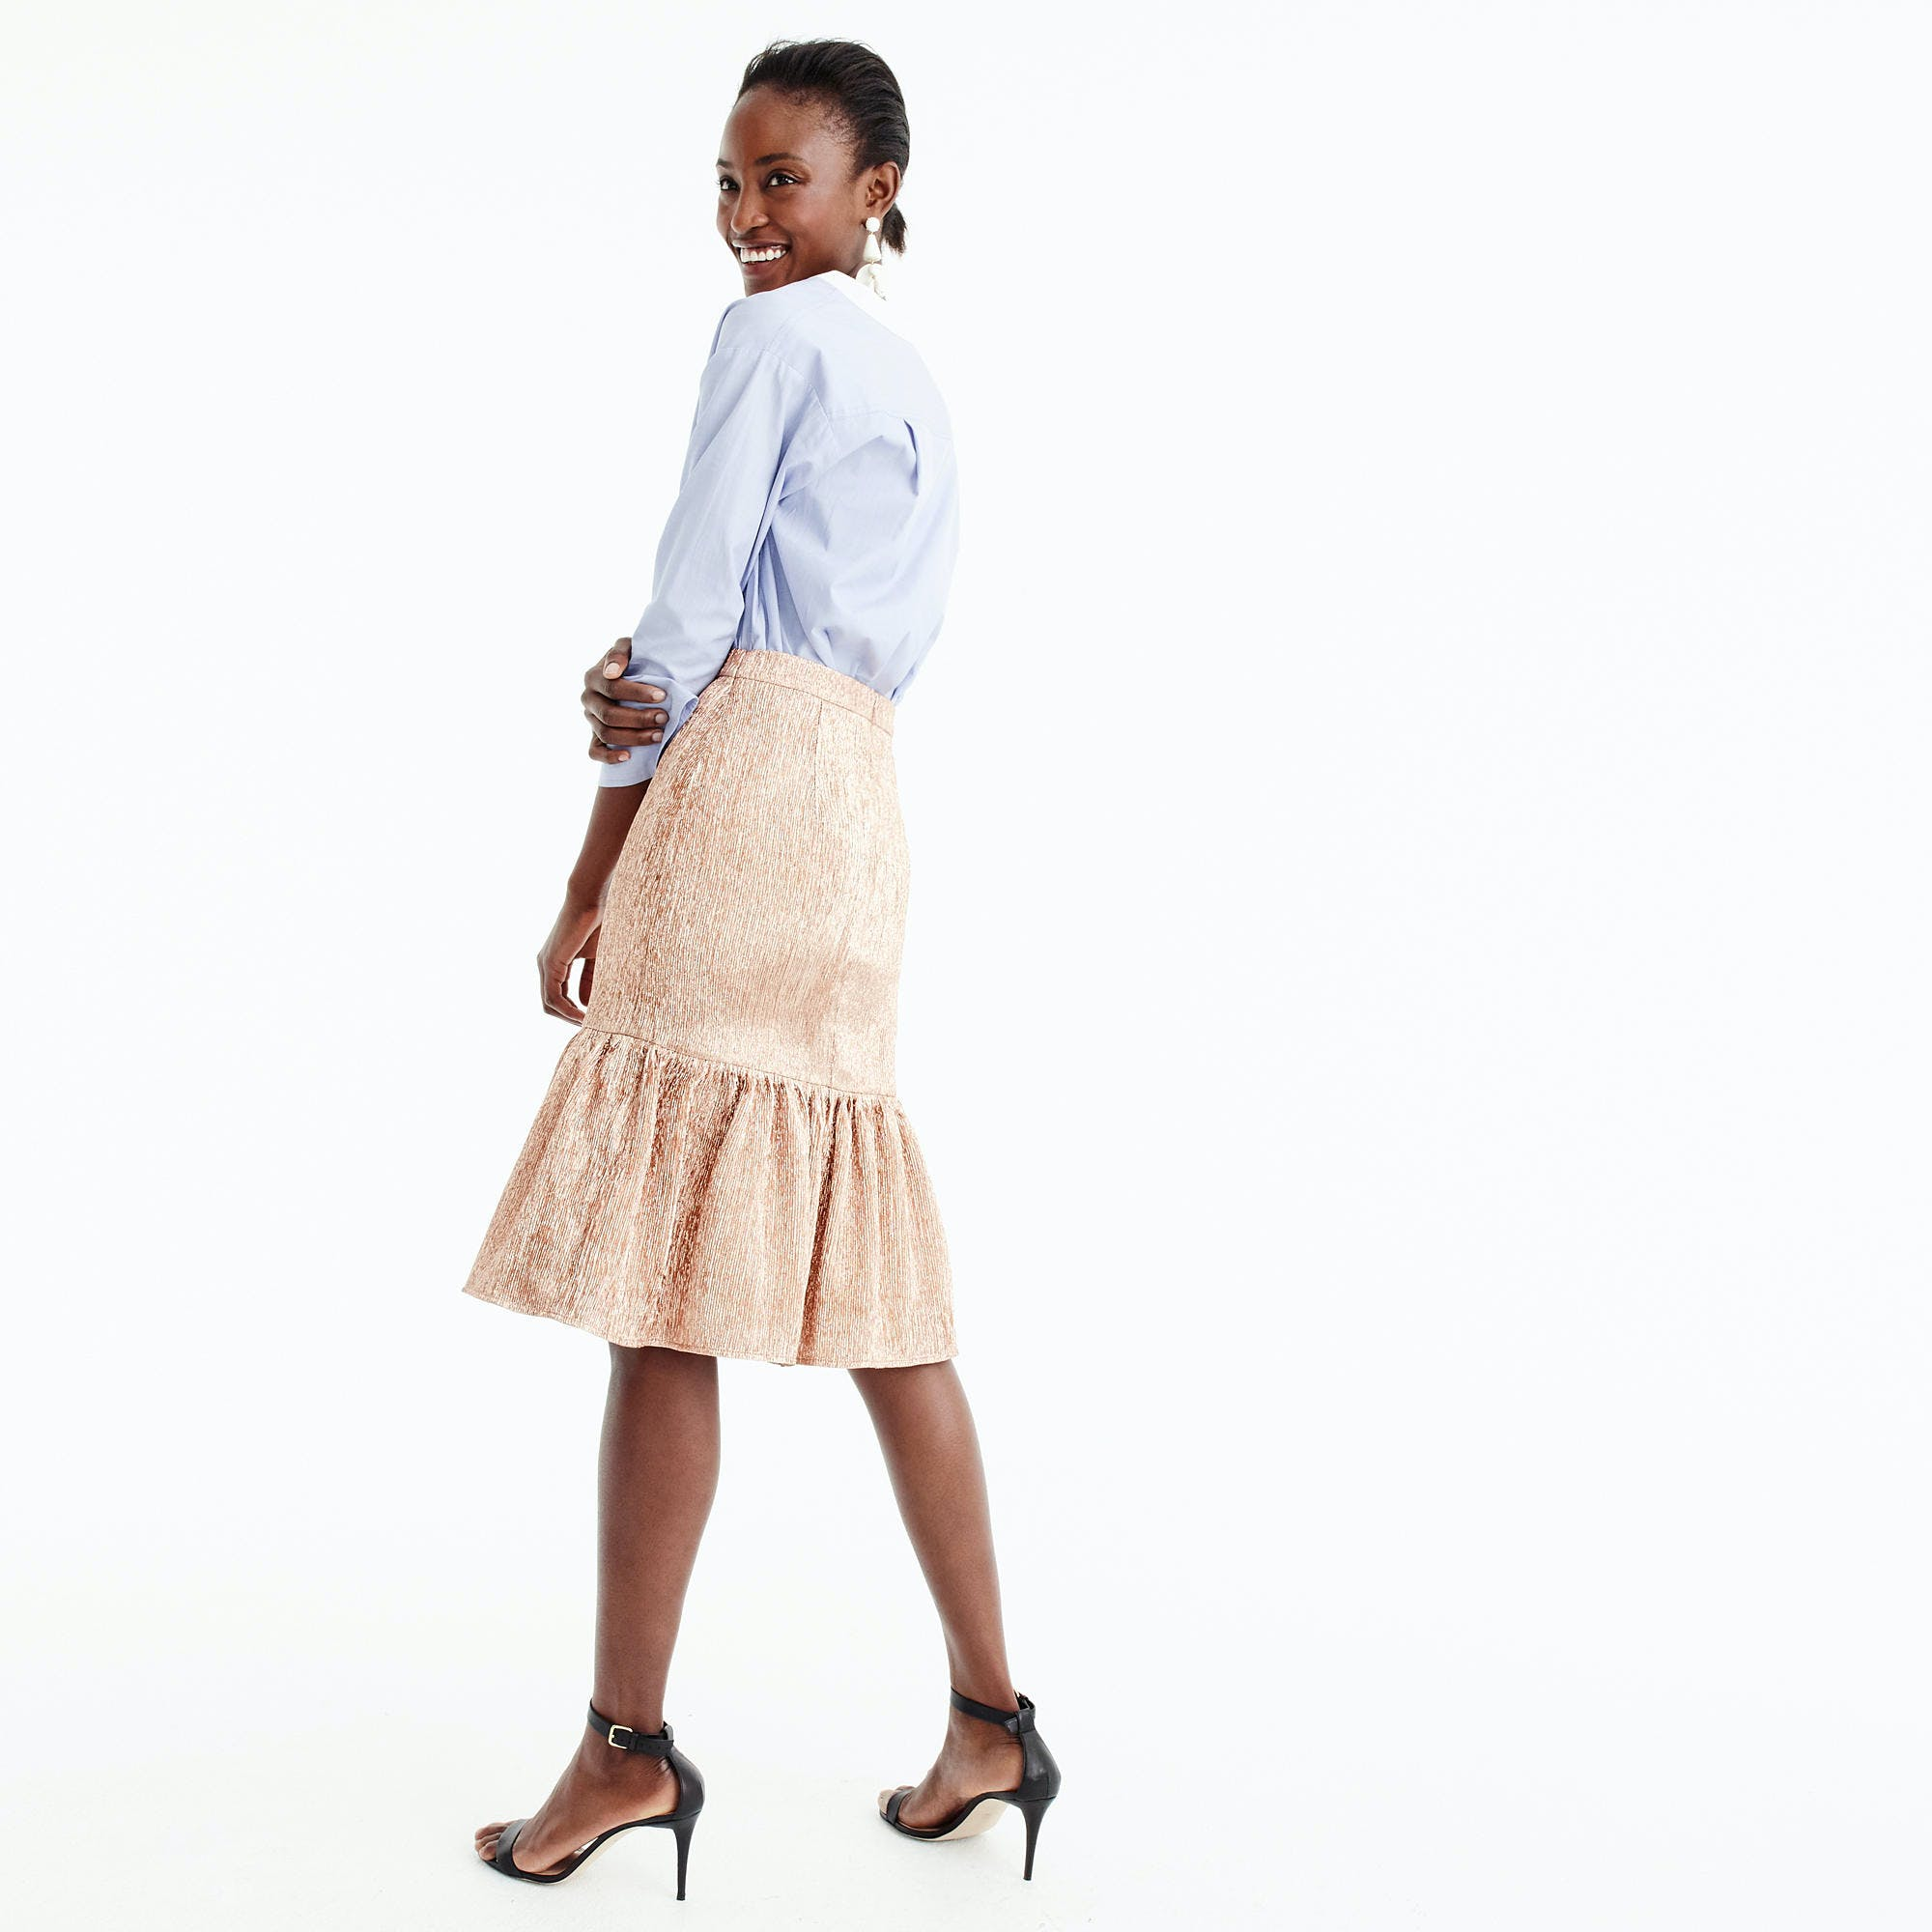 47b42014543a71 The 17 Best Things to Buy at J.Crew Right Now - PureWow